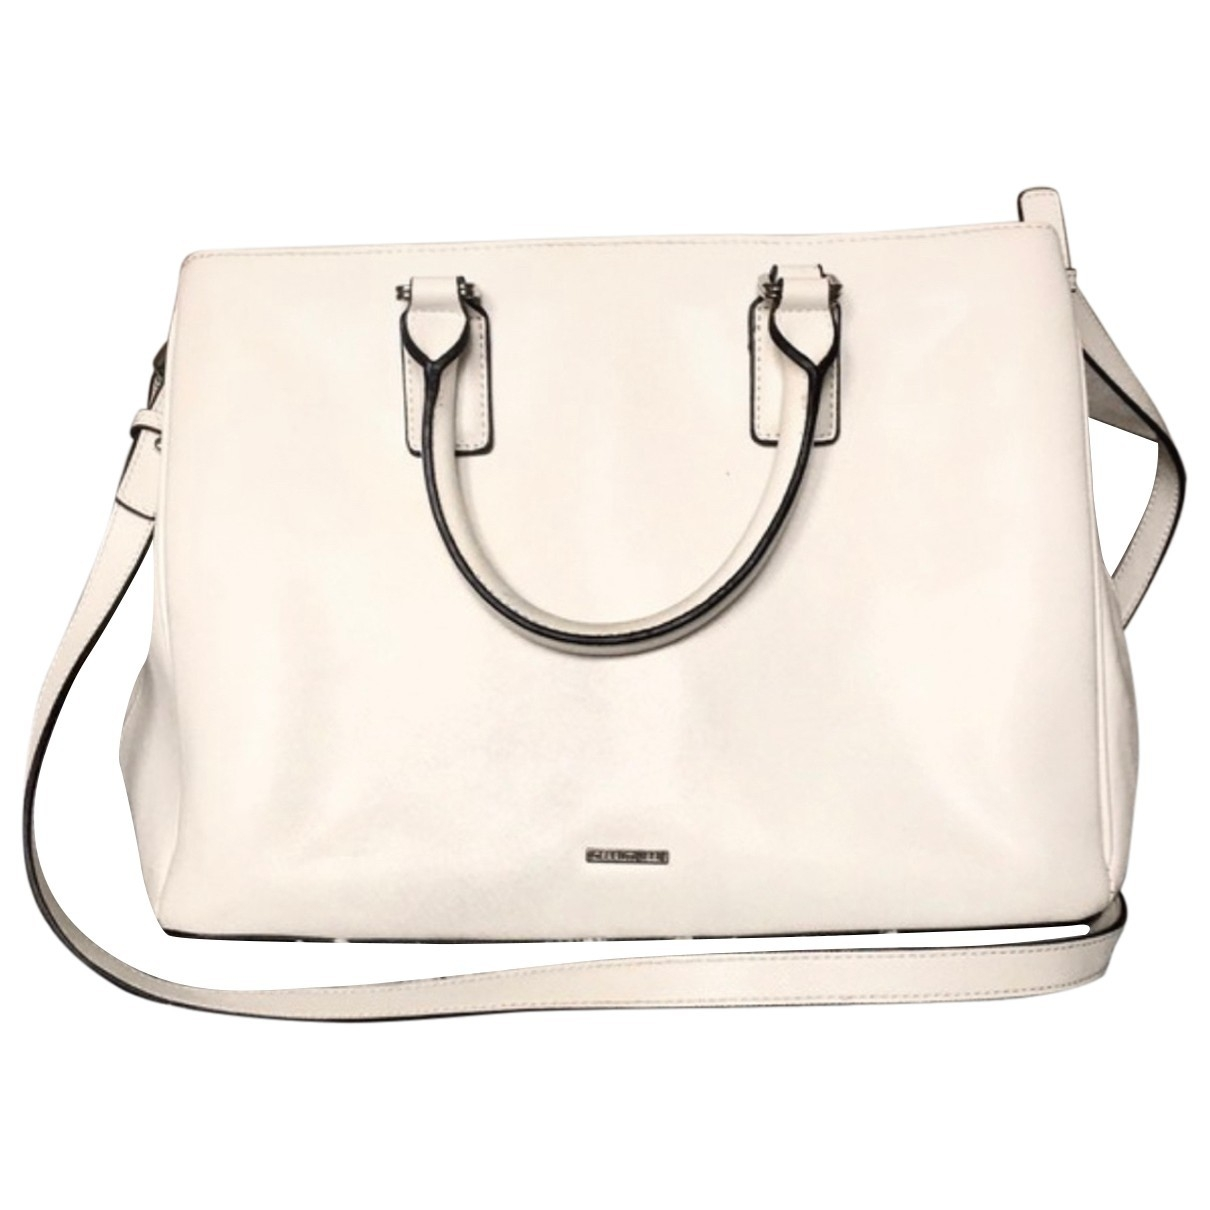 Cerruti \N White Leather handbag for Women \N